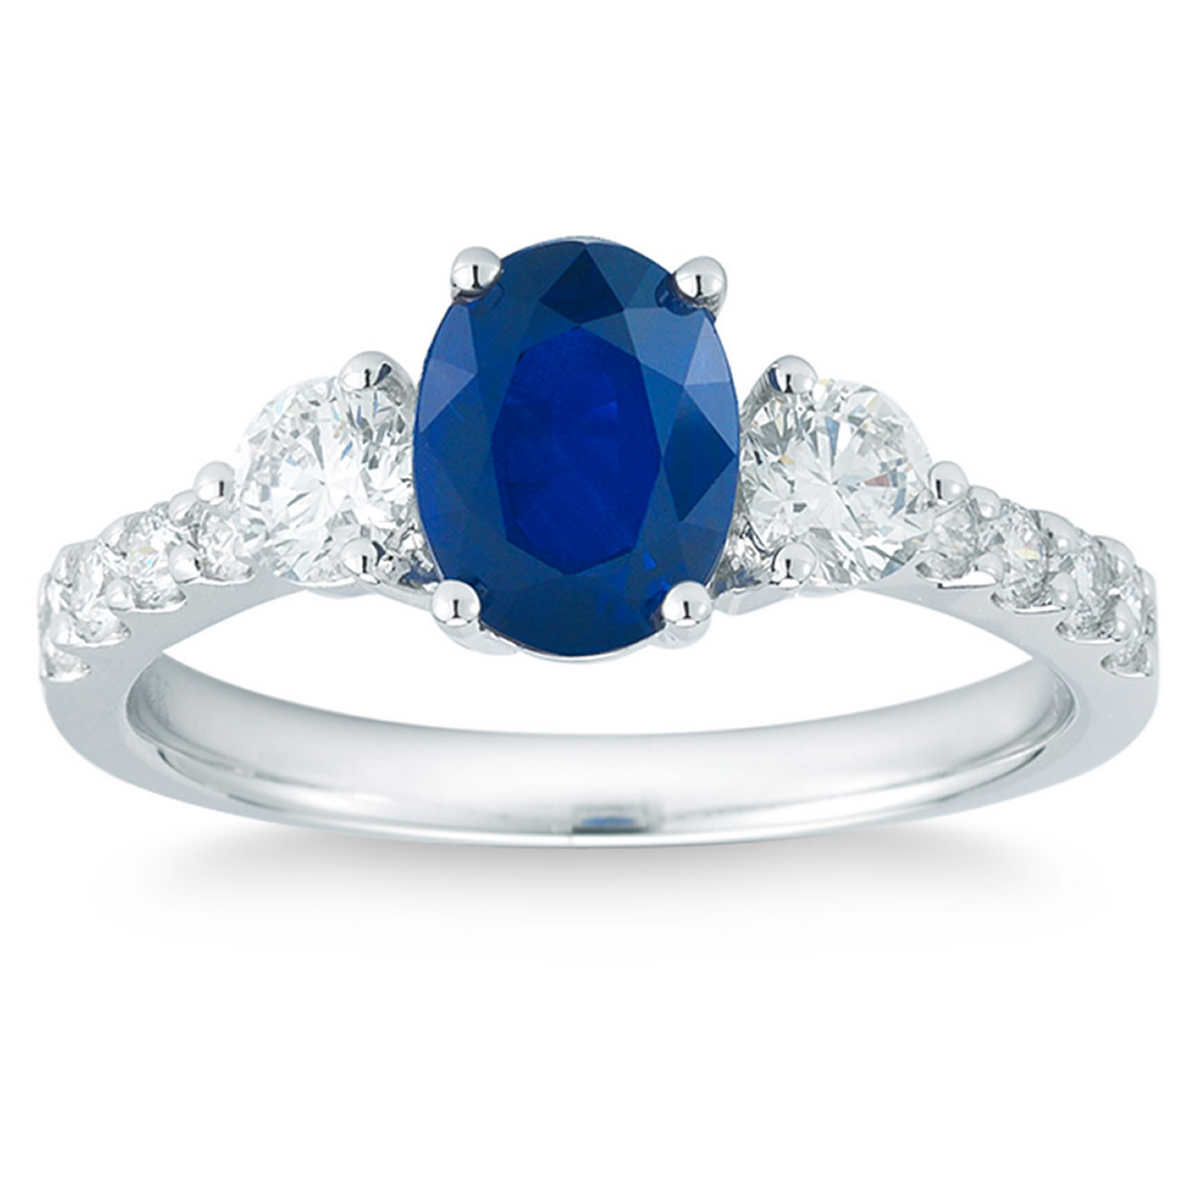 Oval Blue Sapphire And Diamond 14kt White Gold Ring